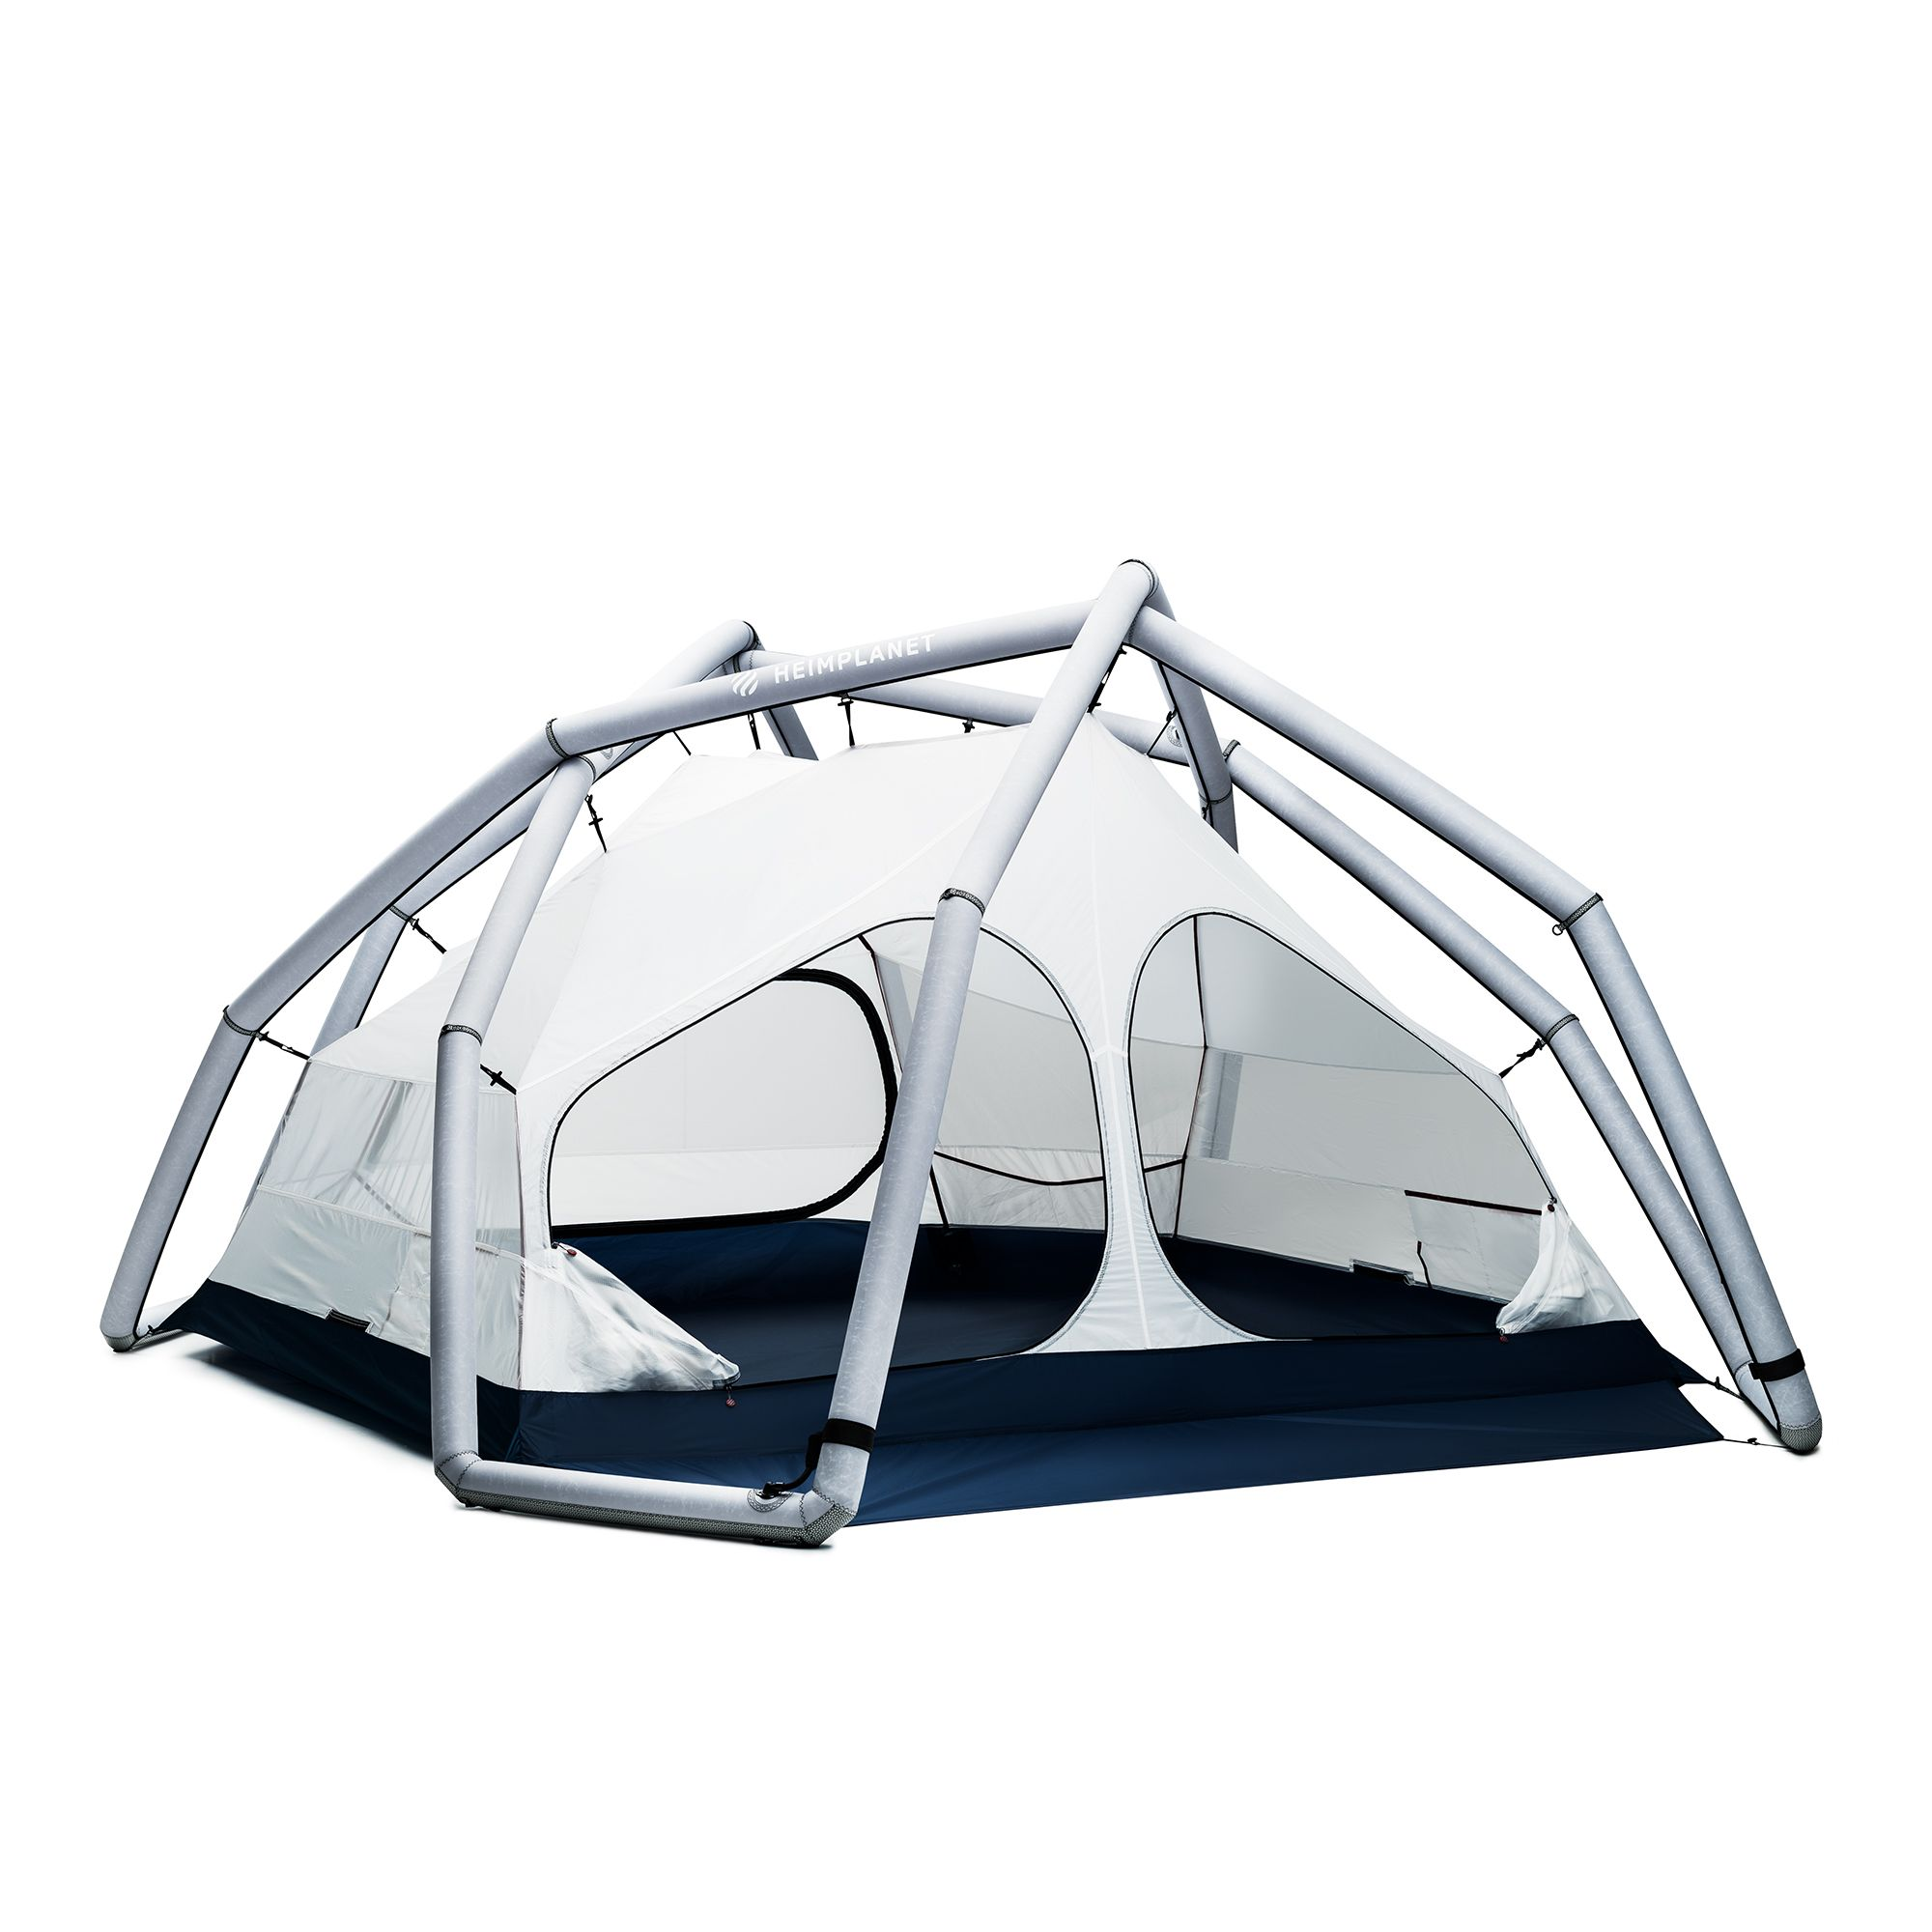 Backdoor Classic 3 Season Inner Tent Tent 4 Season Tent 4 Person Tent